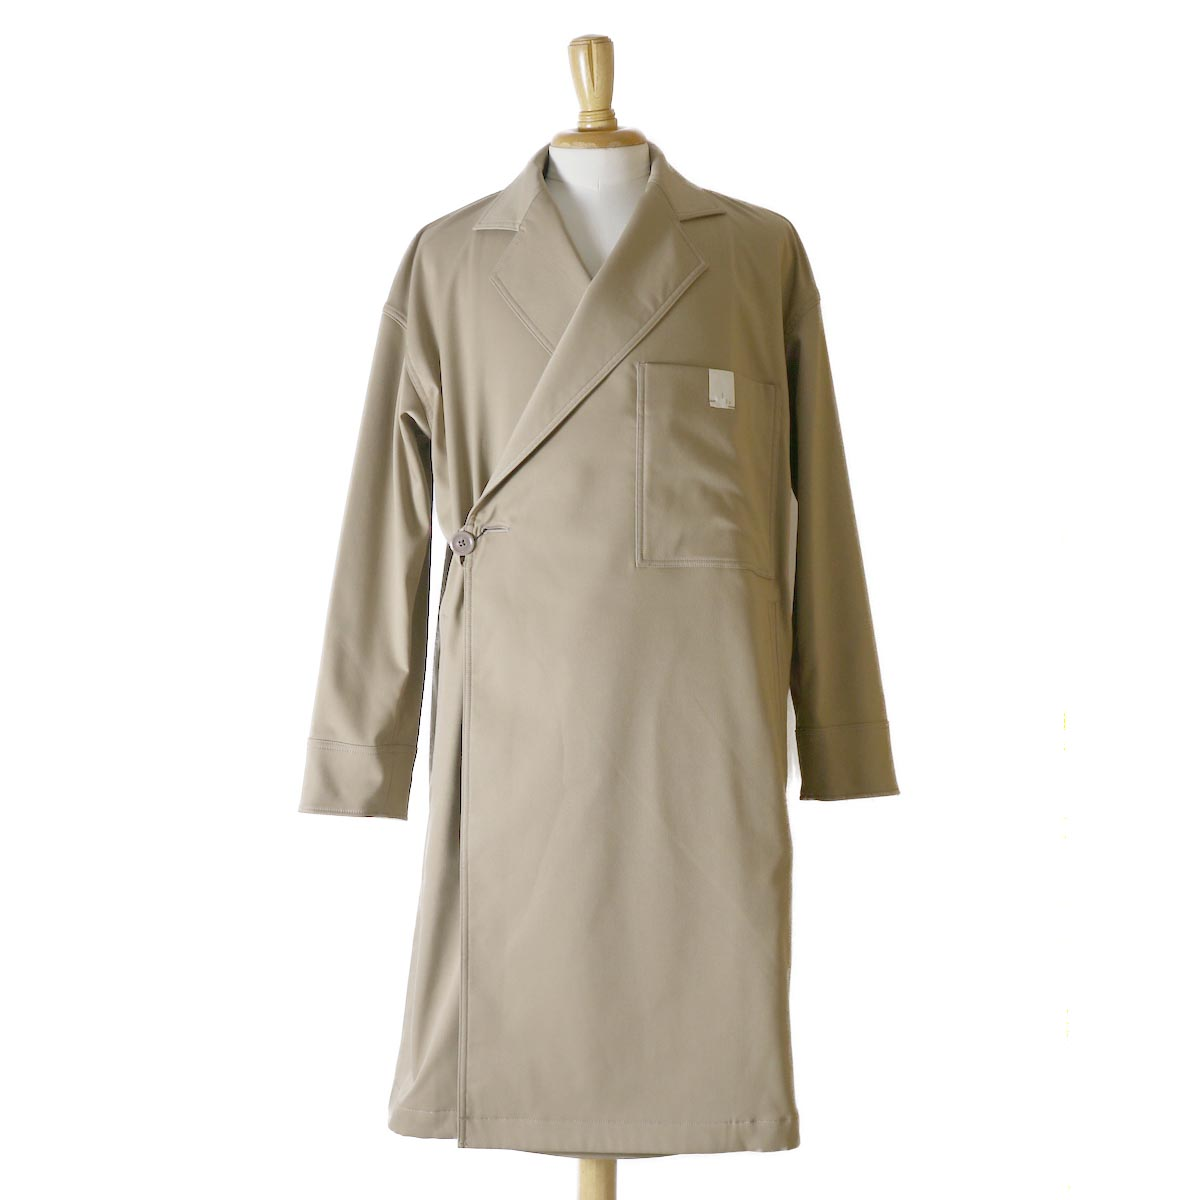 N.HOOLYWOOD / 182-CO12-038-pieces OVER COAT -Beige